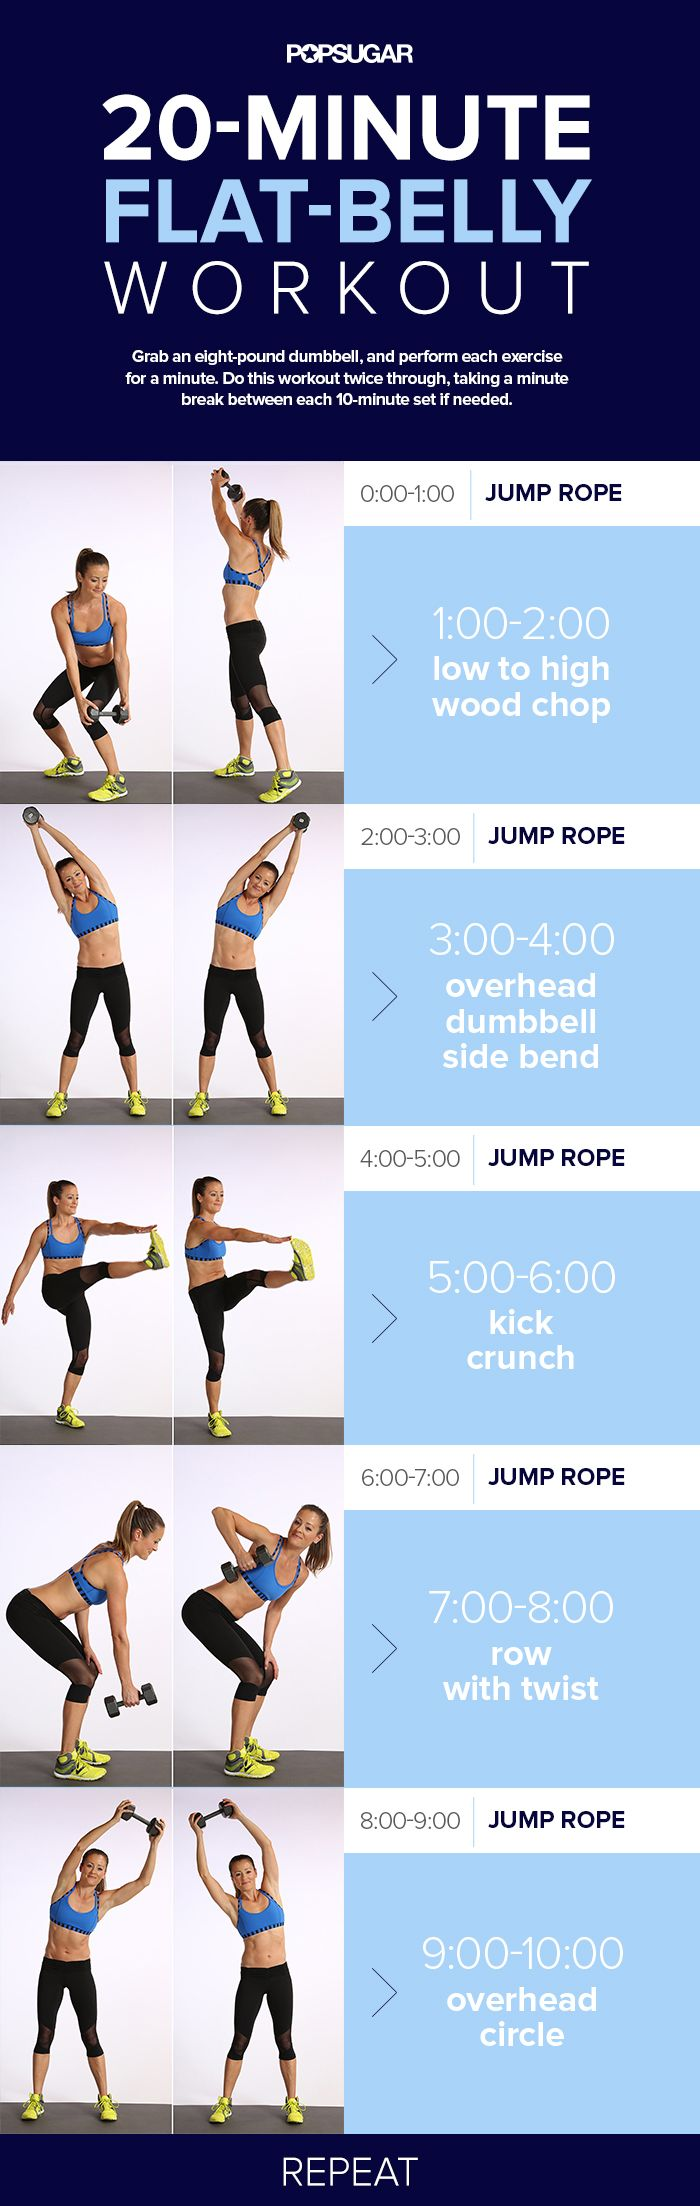 Jump rope to burn calories! Do ab workout to strengthen your core and flatten your belly. Mix these two workouts and you have the flat-belly metabolic mash-up you've been looking for.